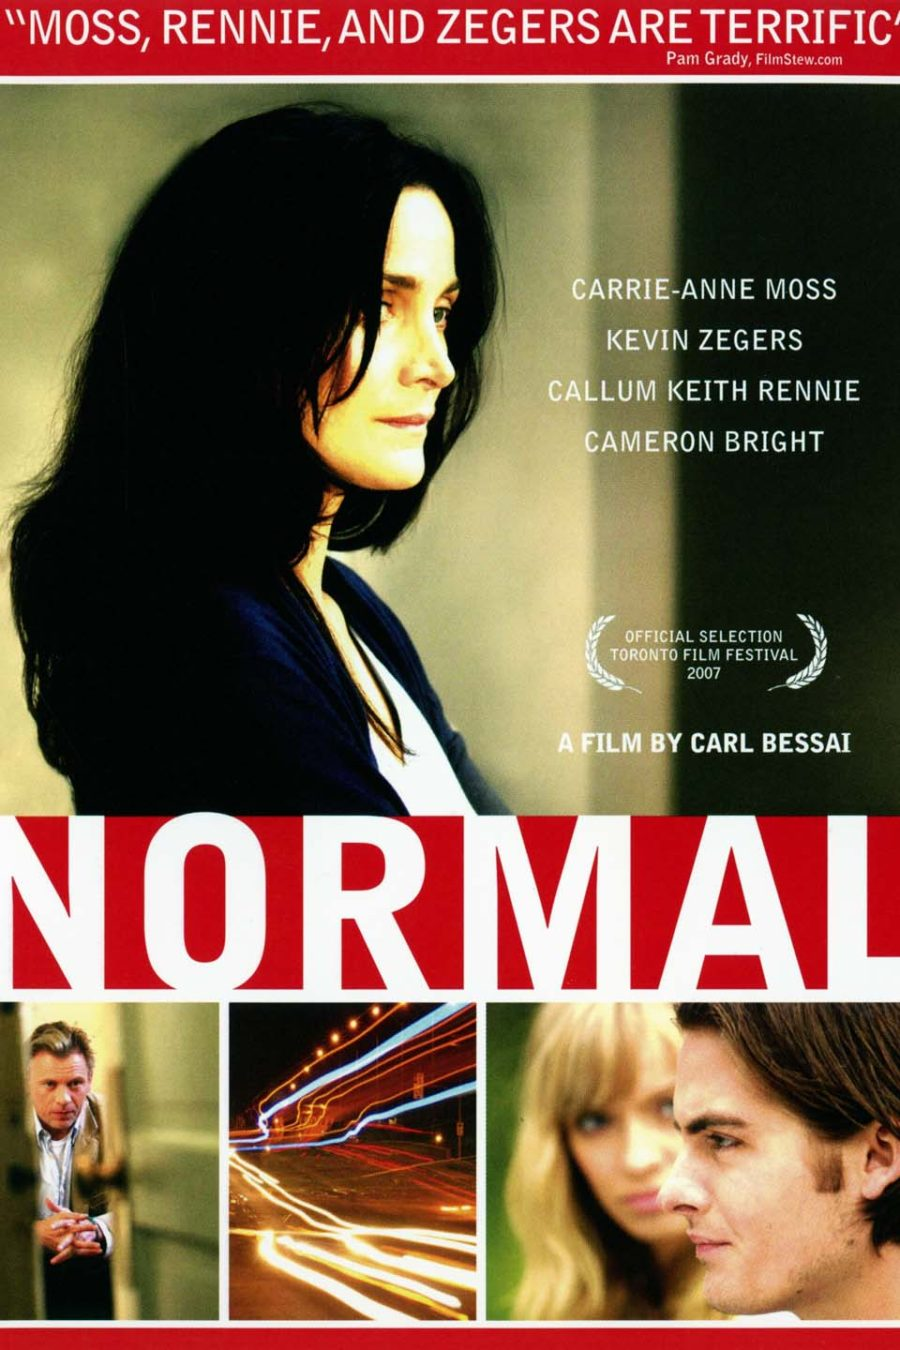 Normal by Carl Bessai